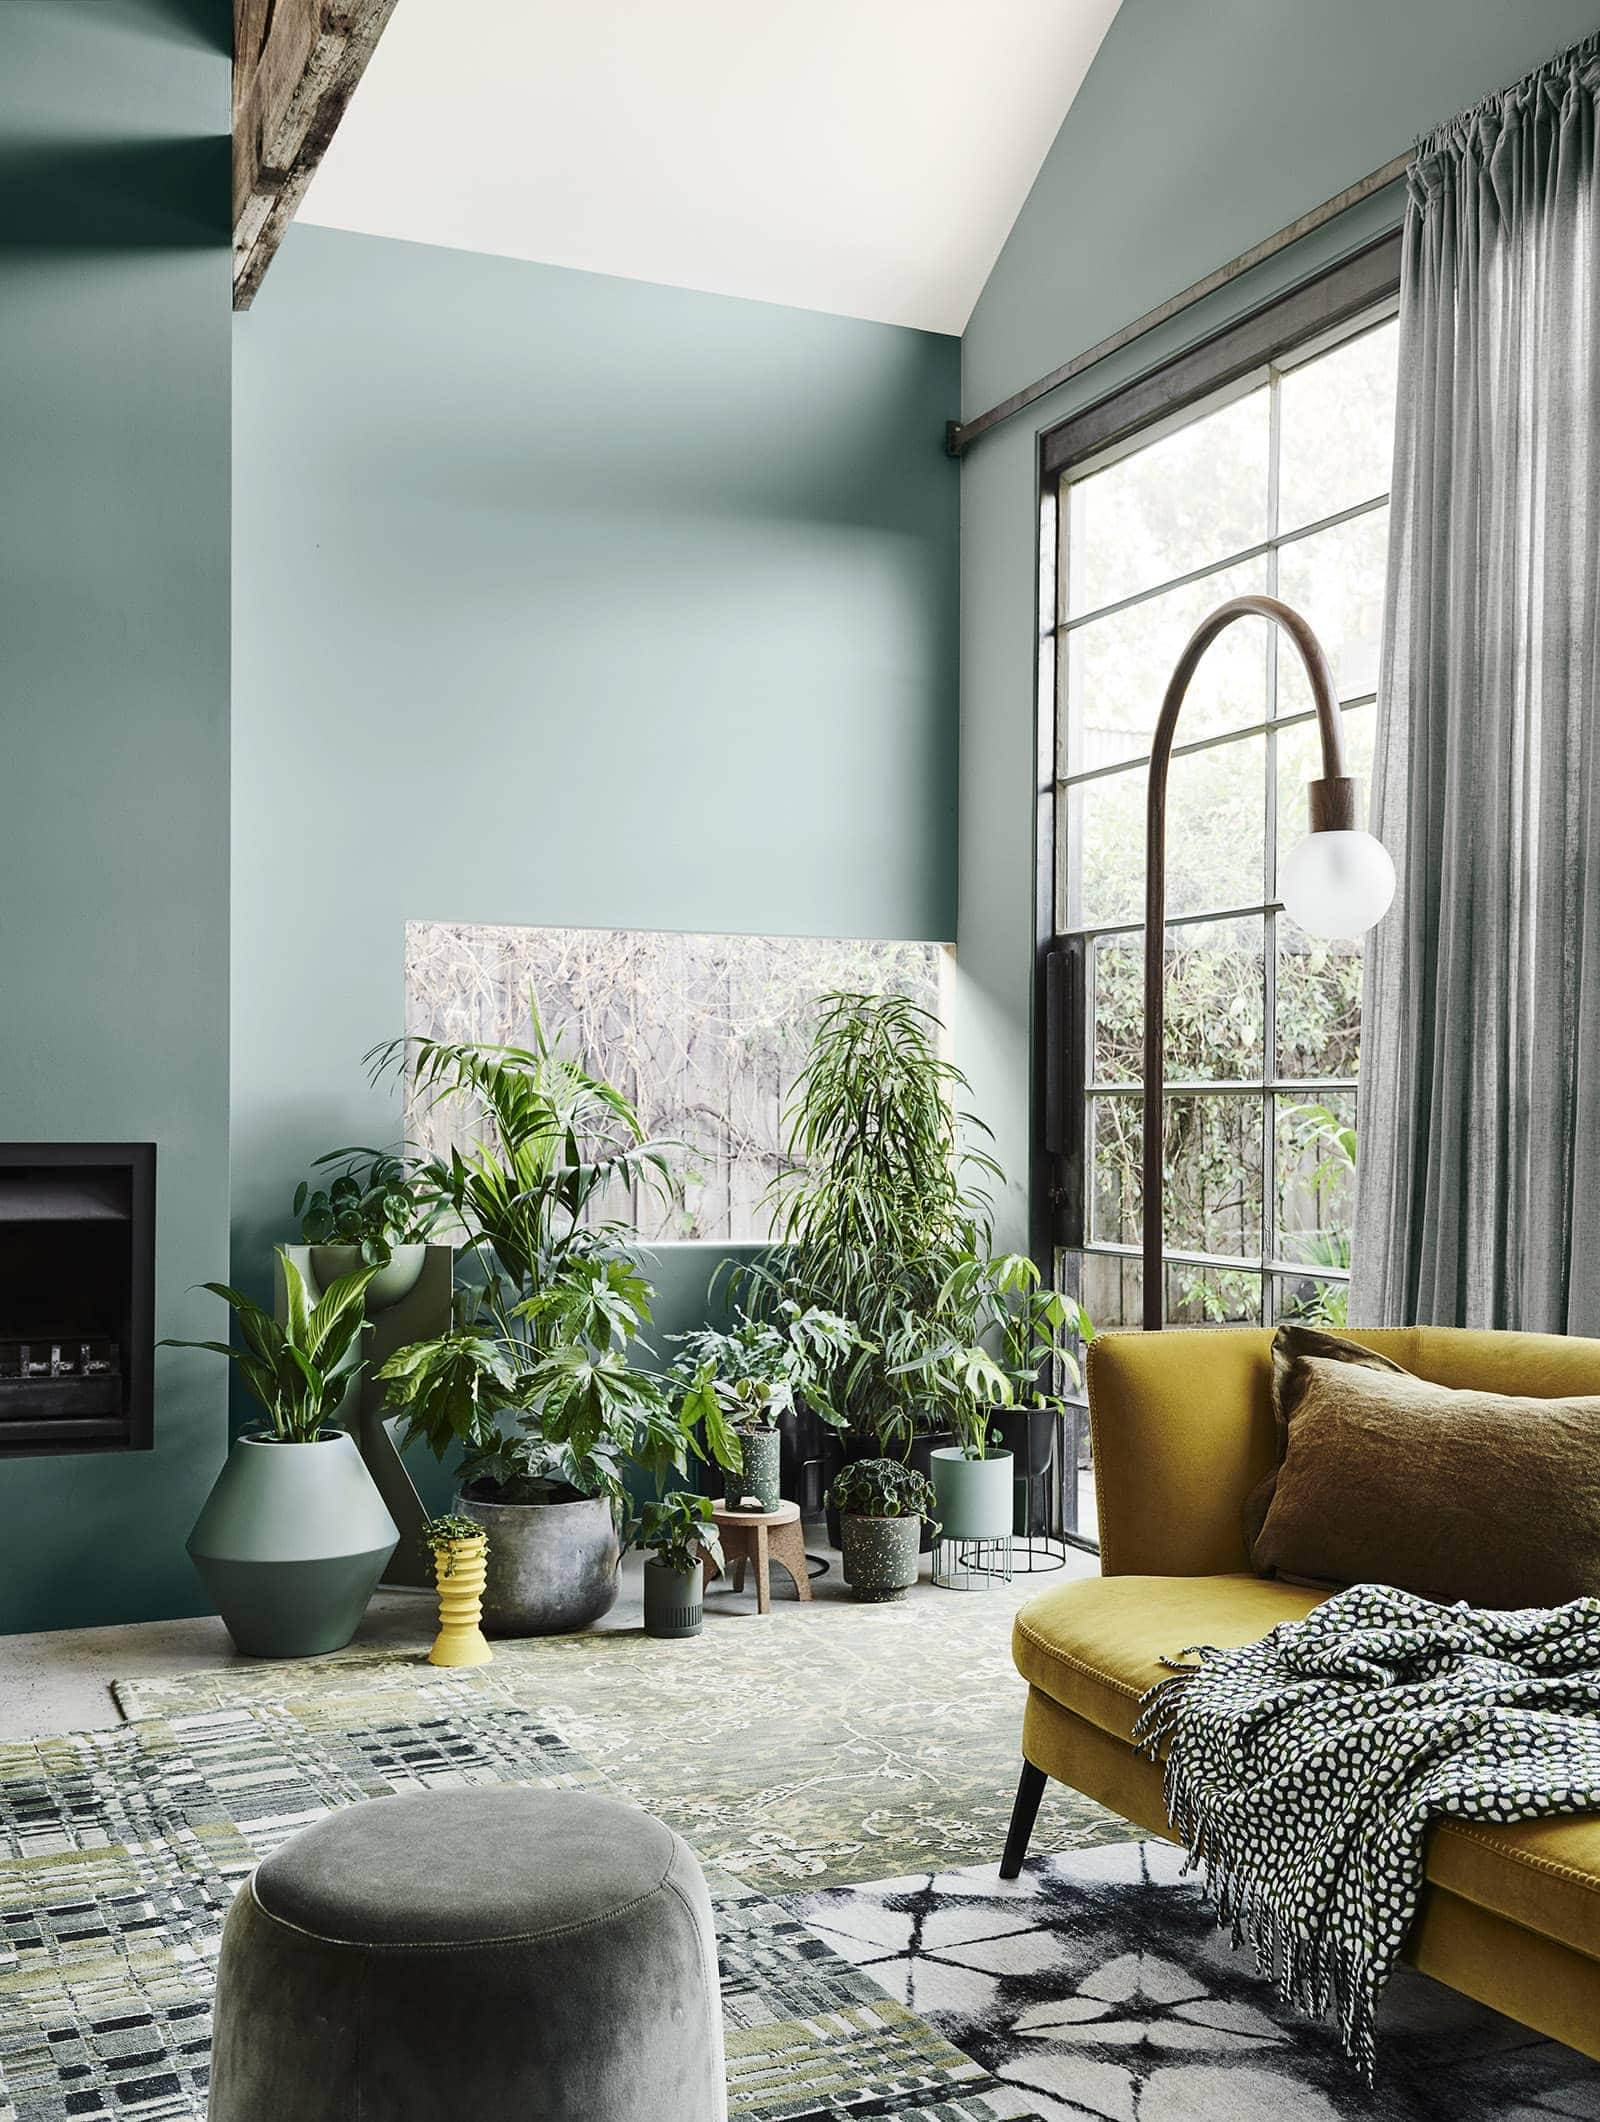 dulux light green painted living room with lots of indoor plants and mustard sofa